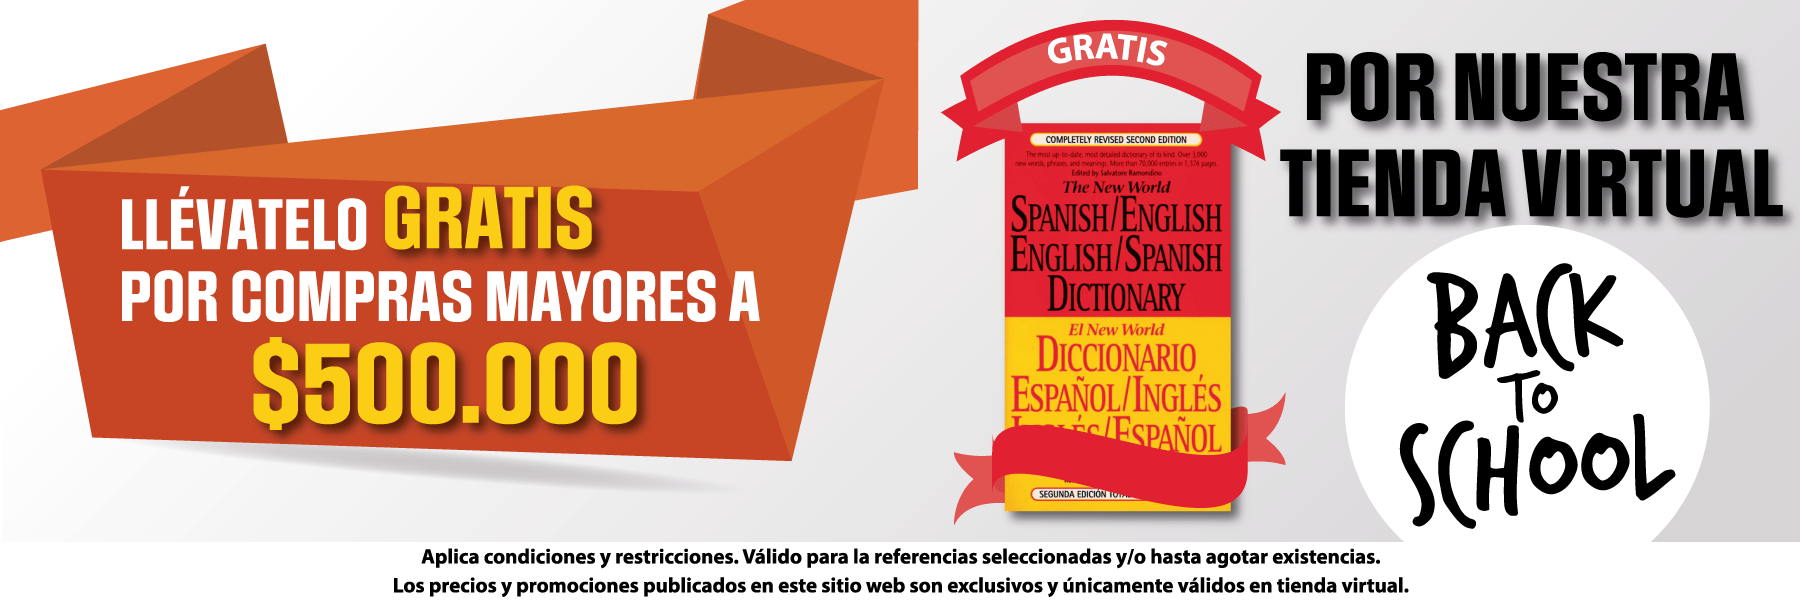 Donde Comprar Libros Ingles Books And Books Libros